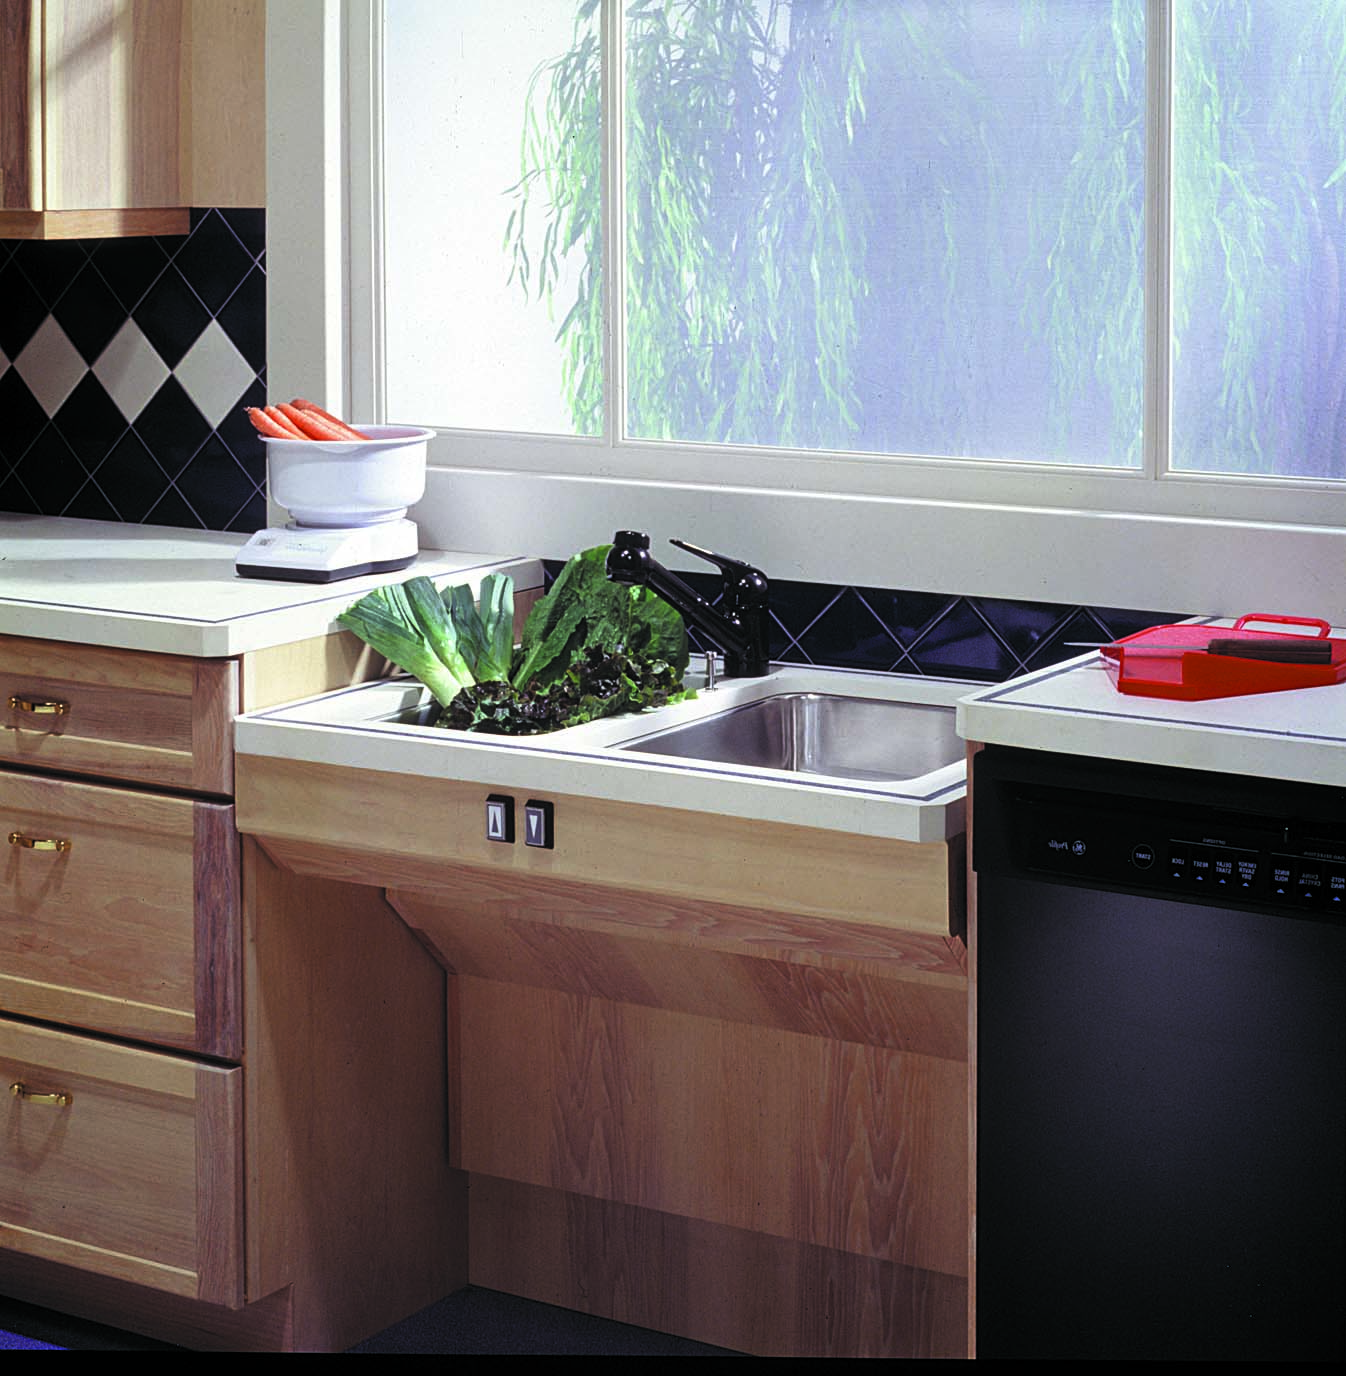 approach adjustable sink sink a sink a lowered - Ada Kitchen Sink